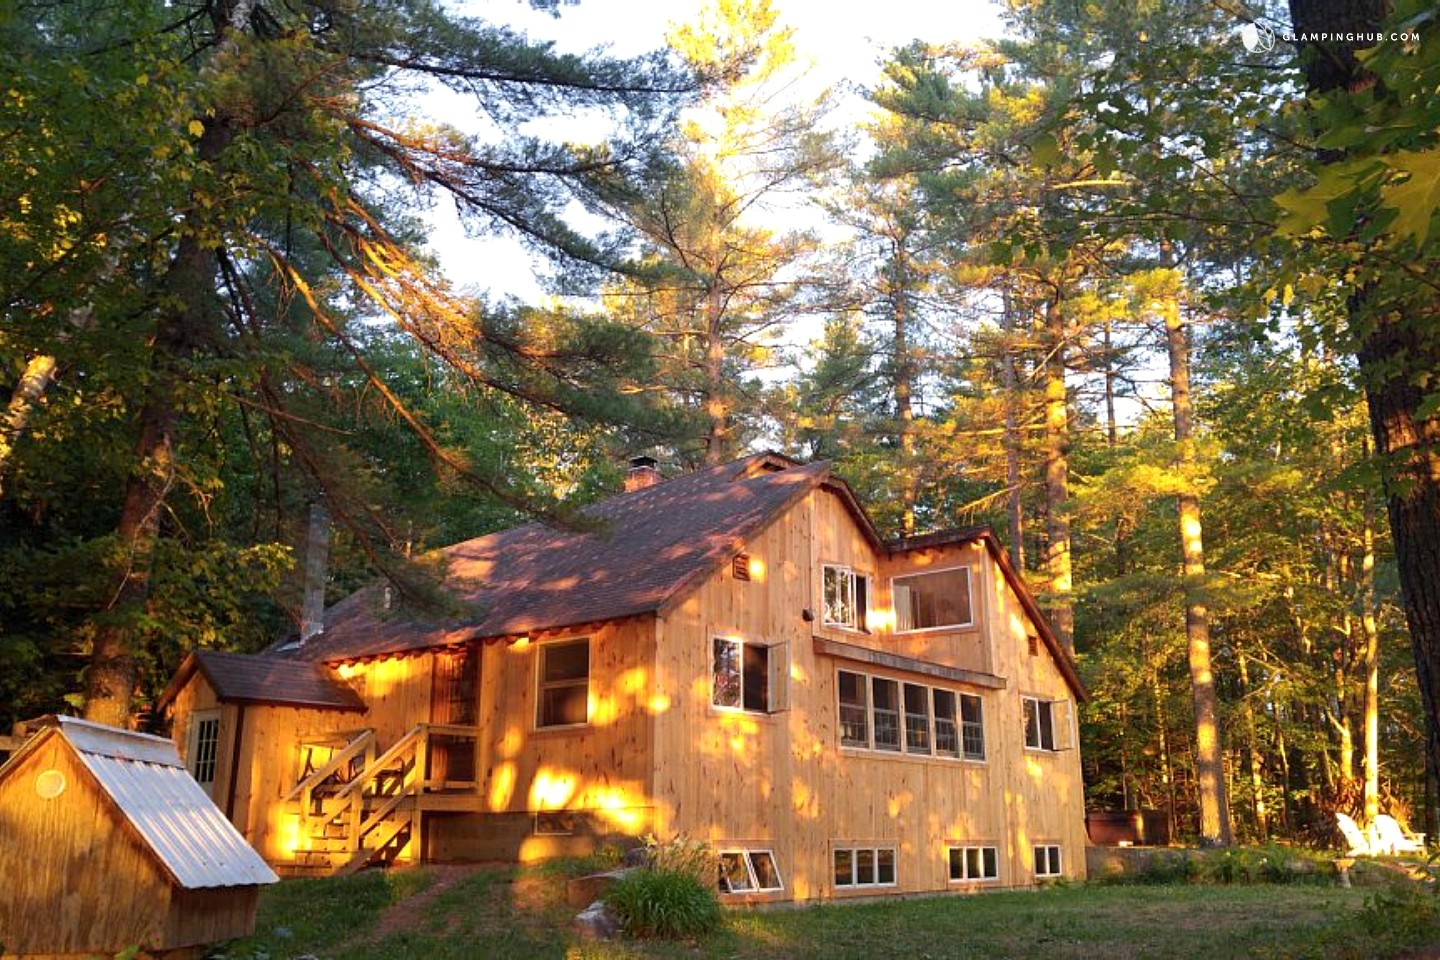 Camping Cabin near Sunday River Maine